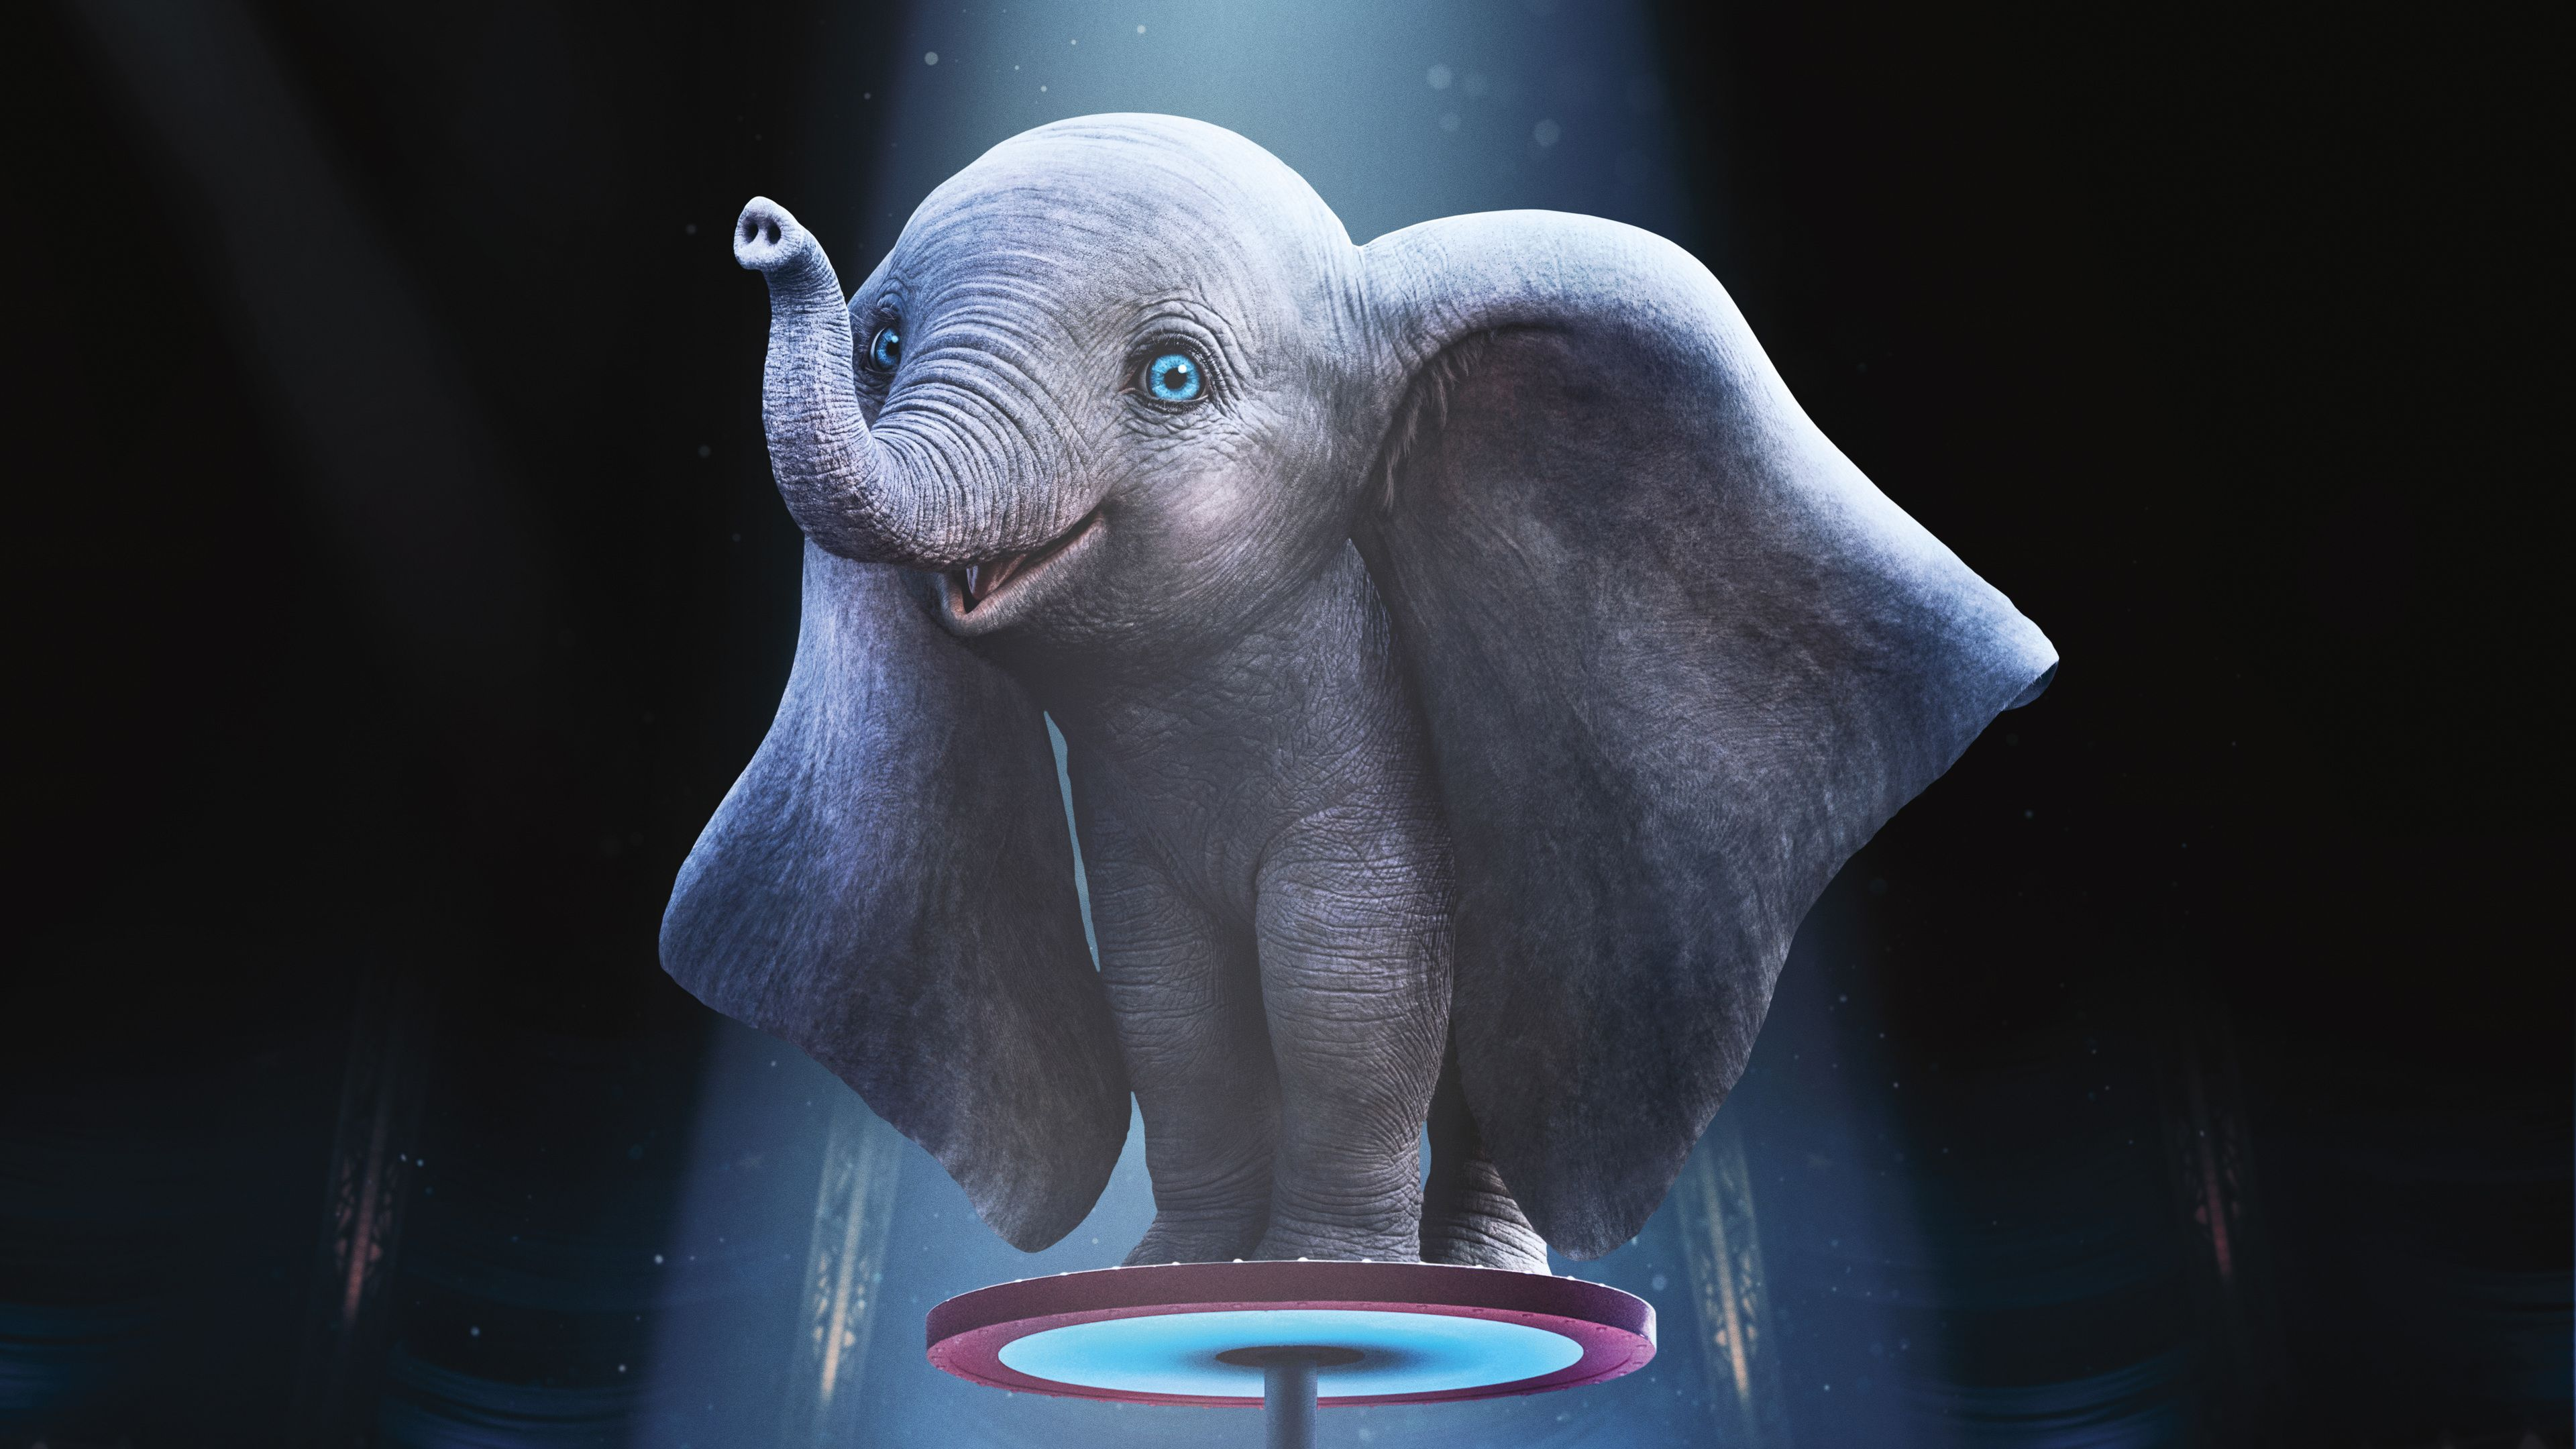 Dumbo Movie 4k Movies Wallpapers Hd Wallpapers Dumbo Wallpapers Dumbo Movie Wallpap Movie Wallpapers Iphone Wallpaper Inspirational Iphone Wallpaper Hipster